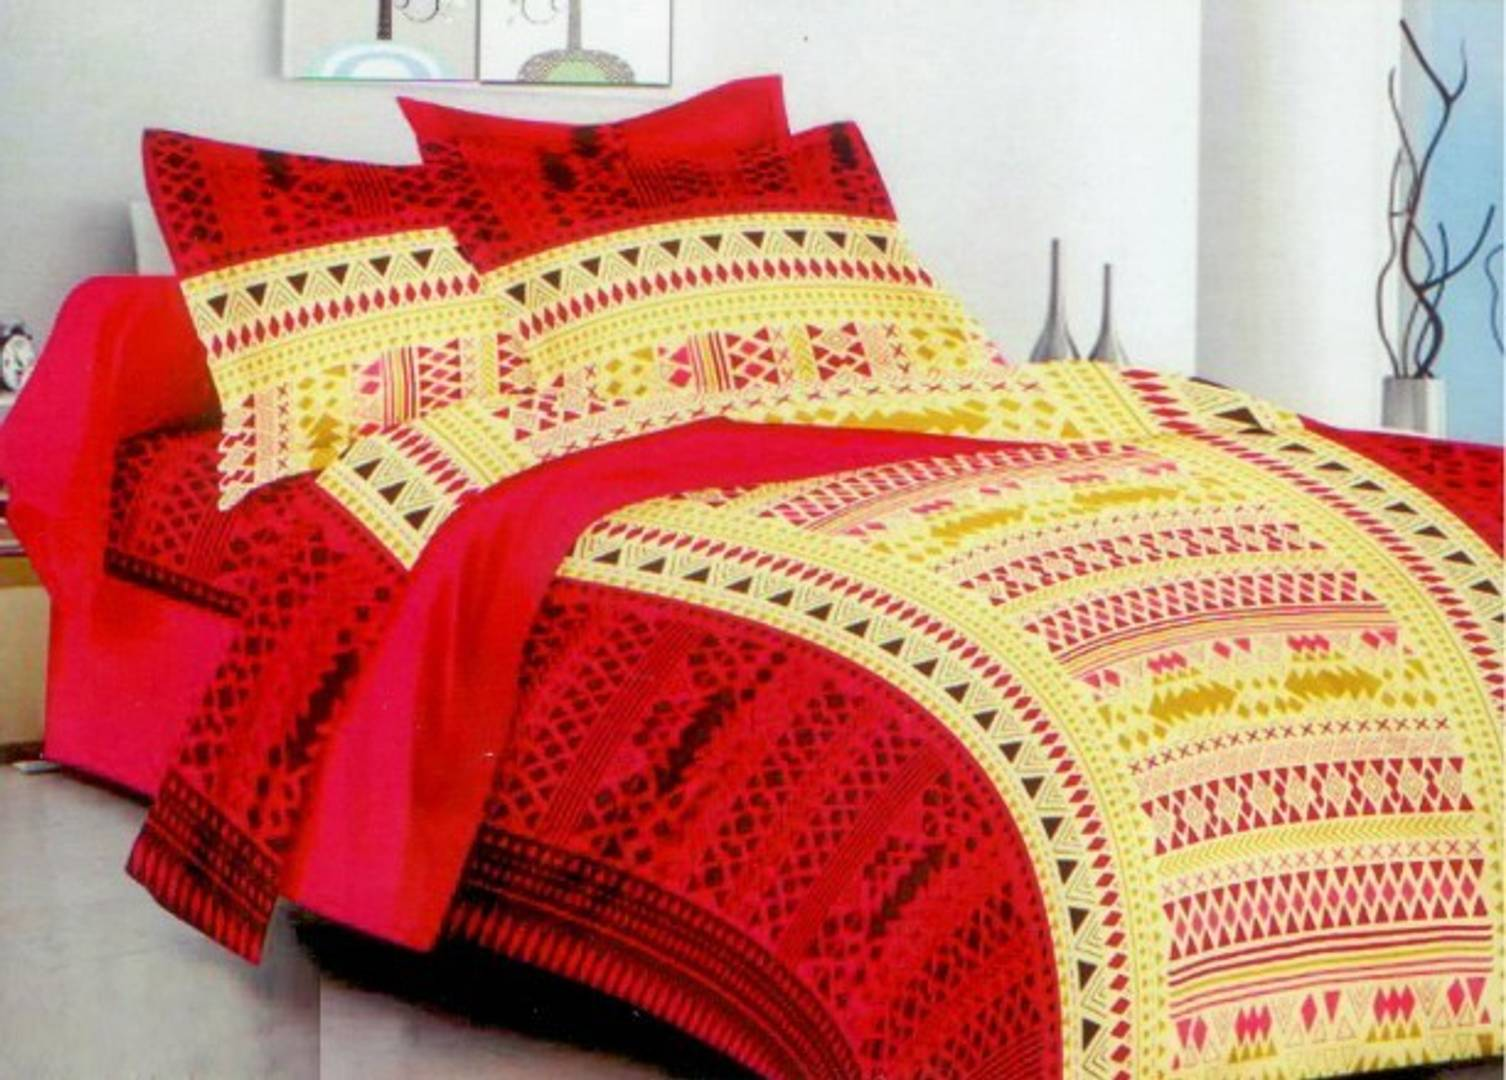 Elite Pure Cotton Double Bedsheets Book Fold Packing   Divya, Noida   For  Sale   Looking For Resellers